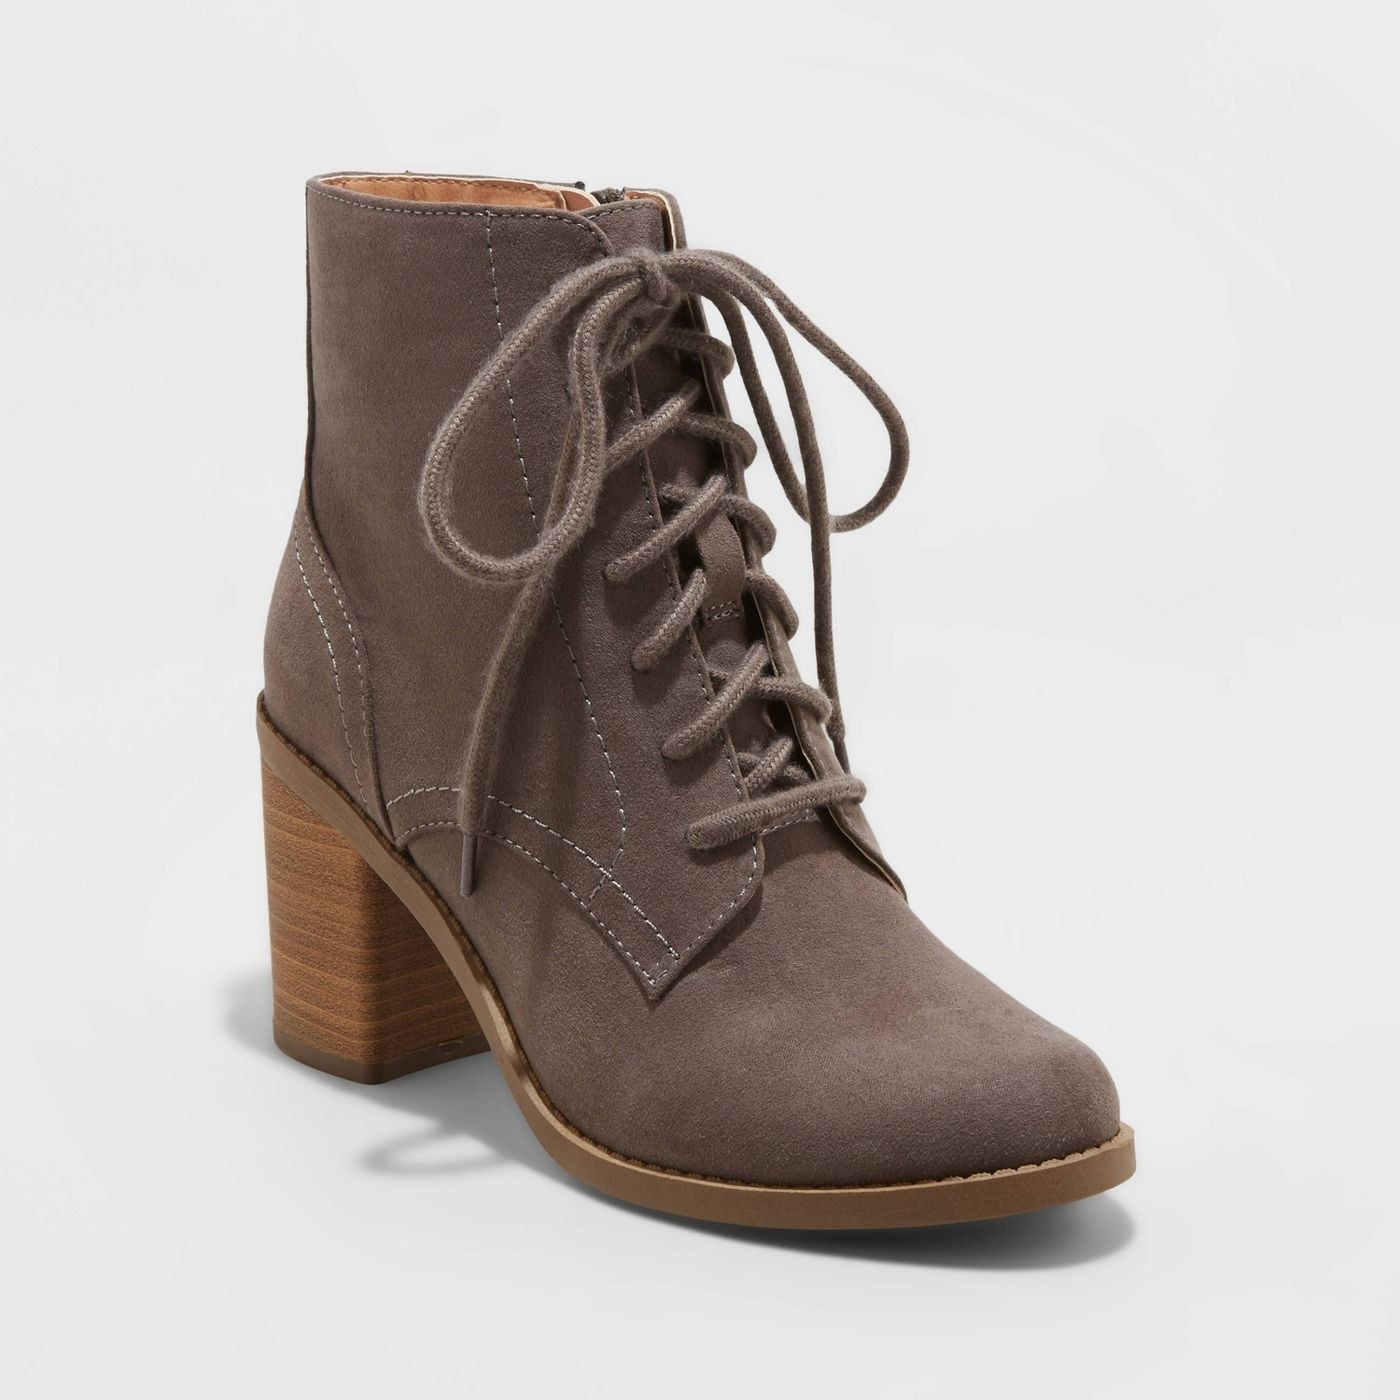 gray laceup fashion booties with wooden heel